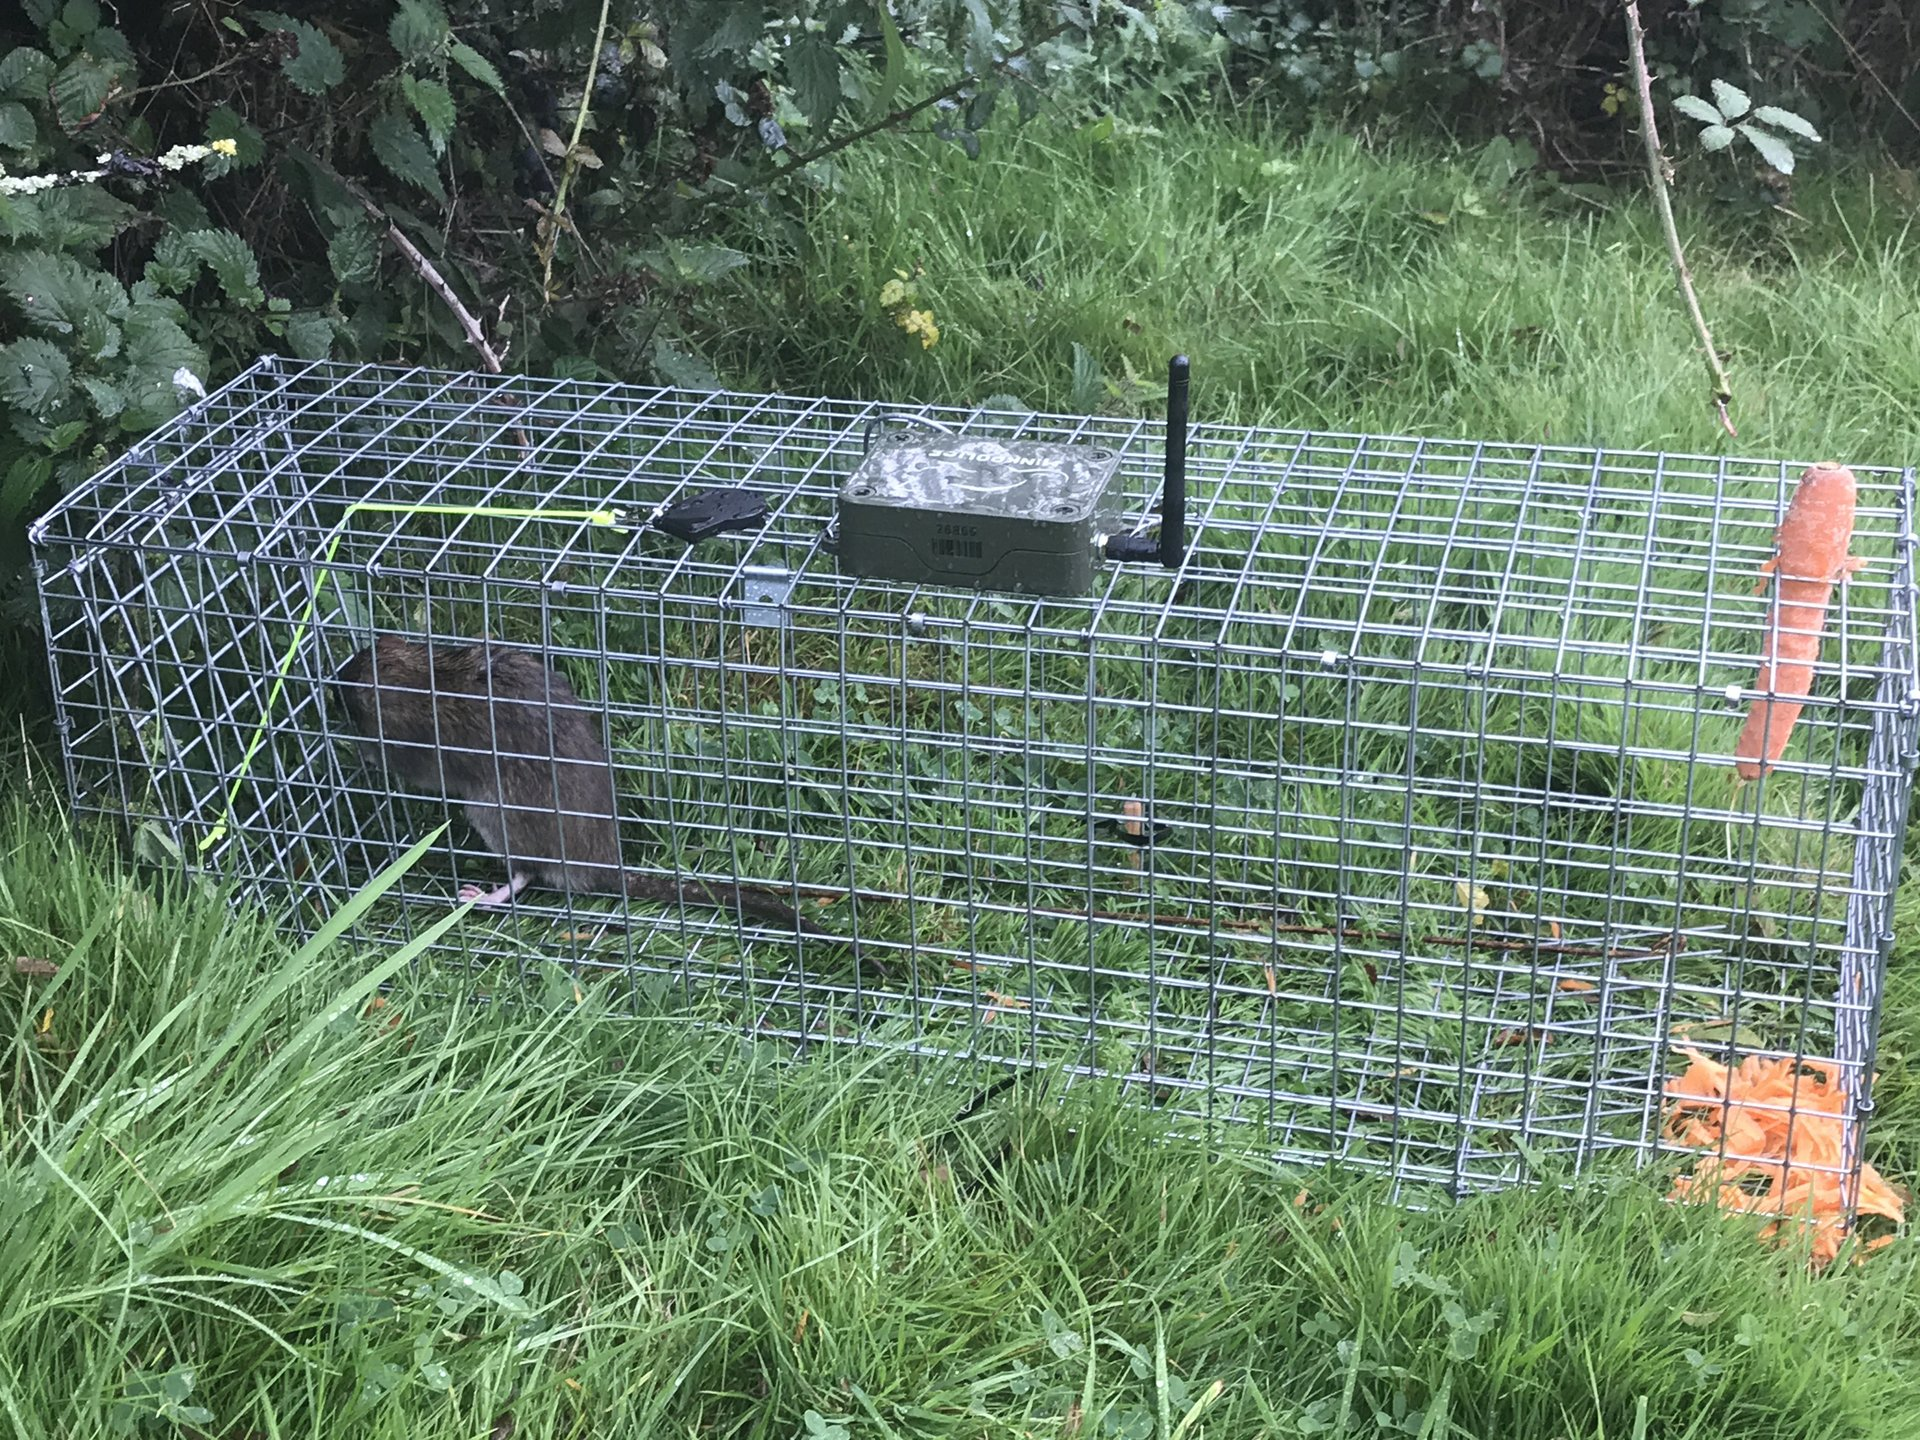 Rat Monitoring System on a trap